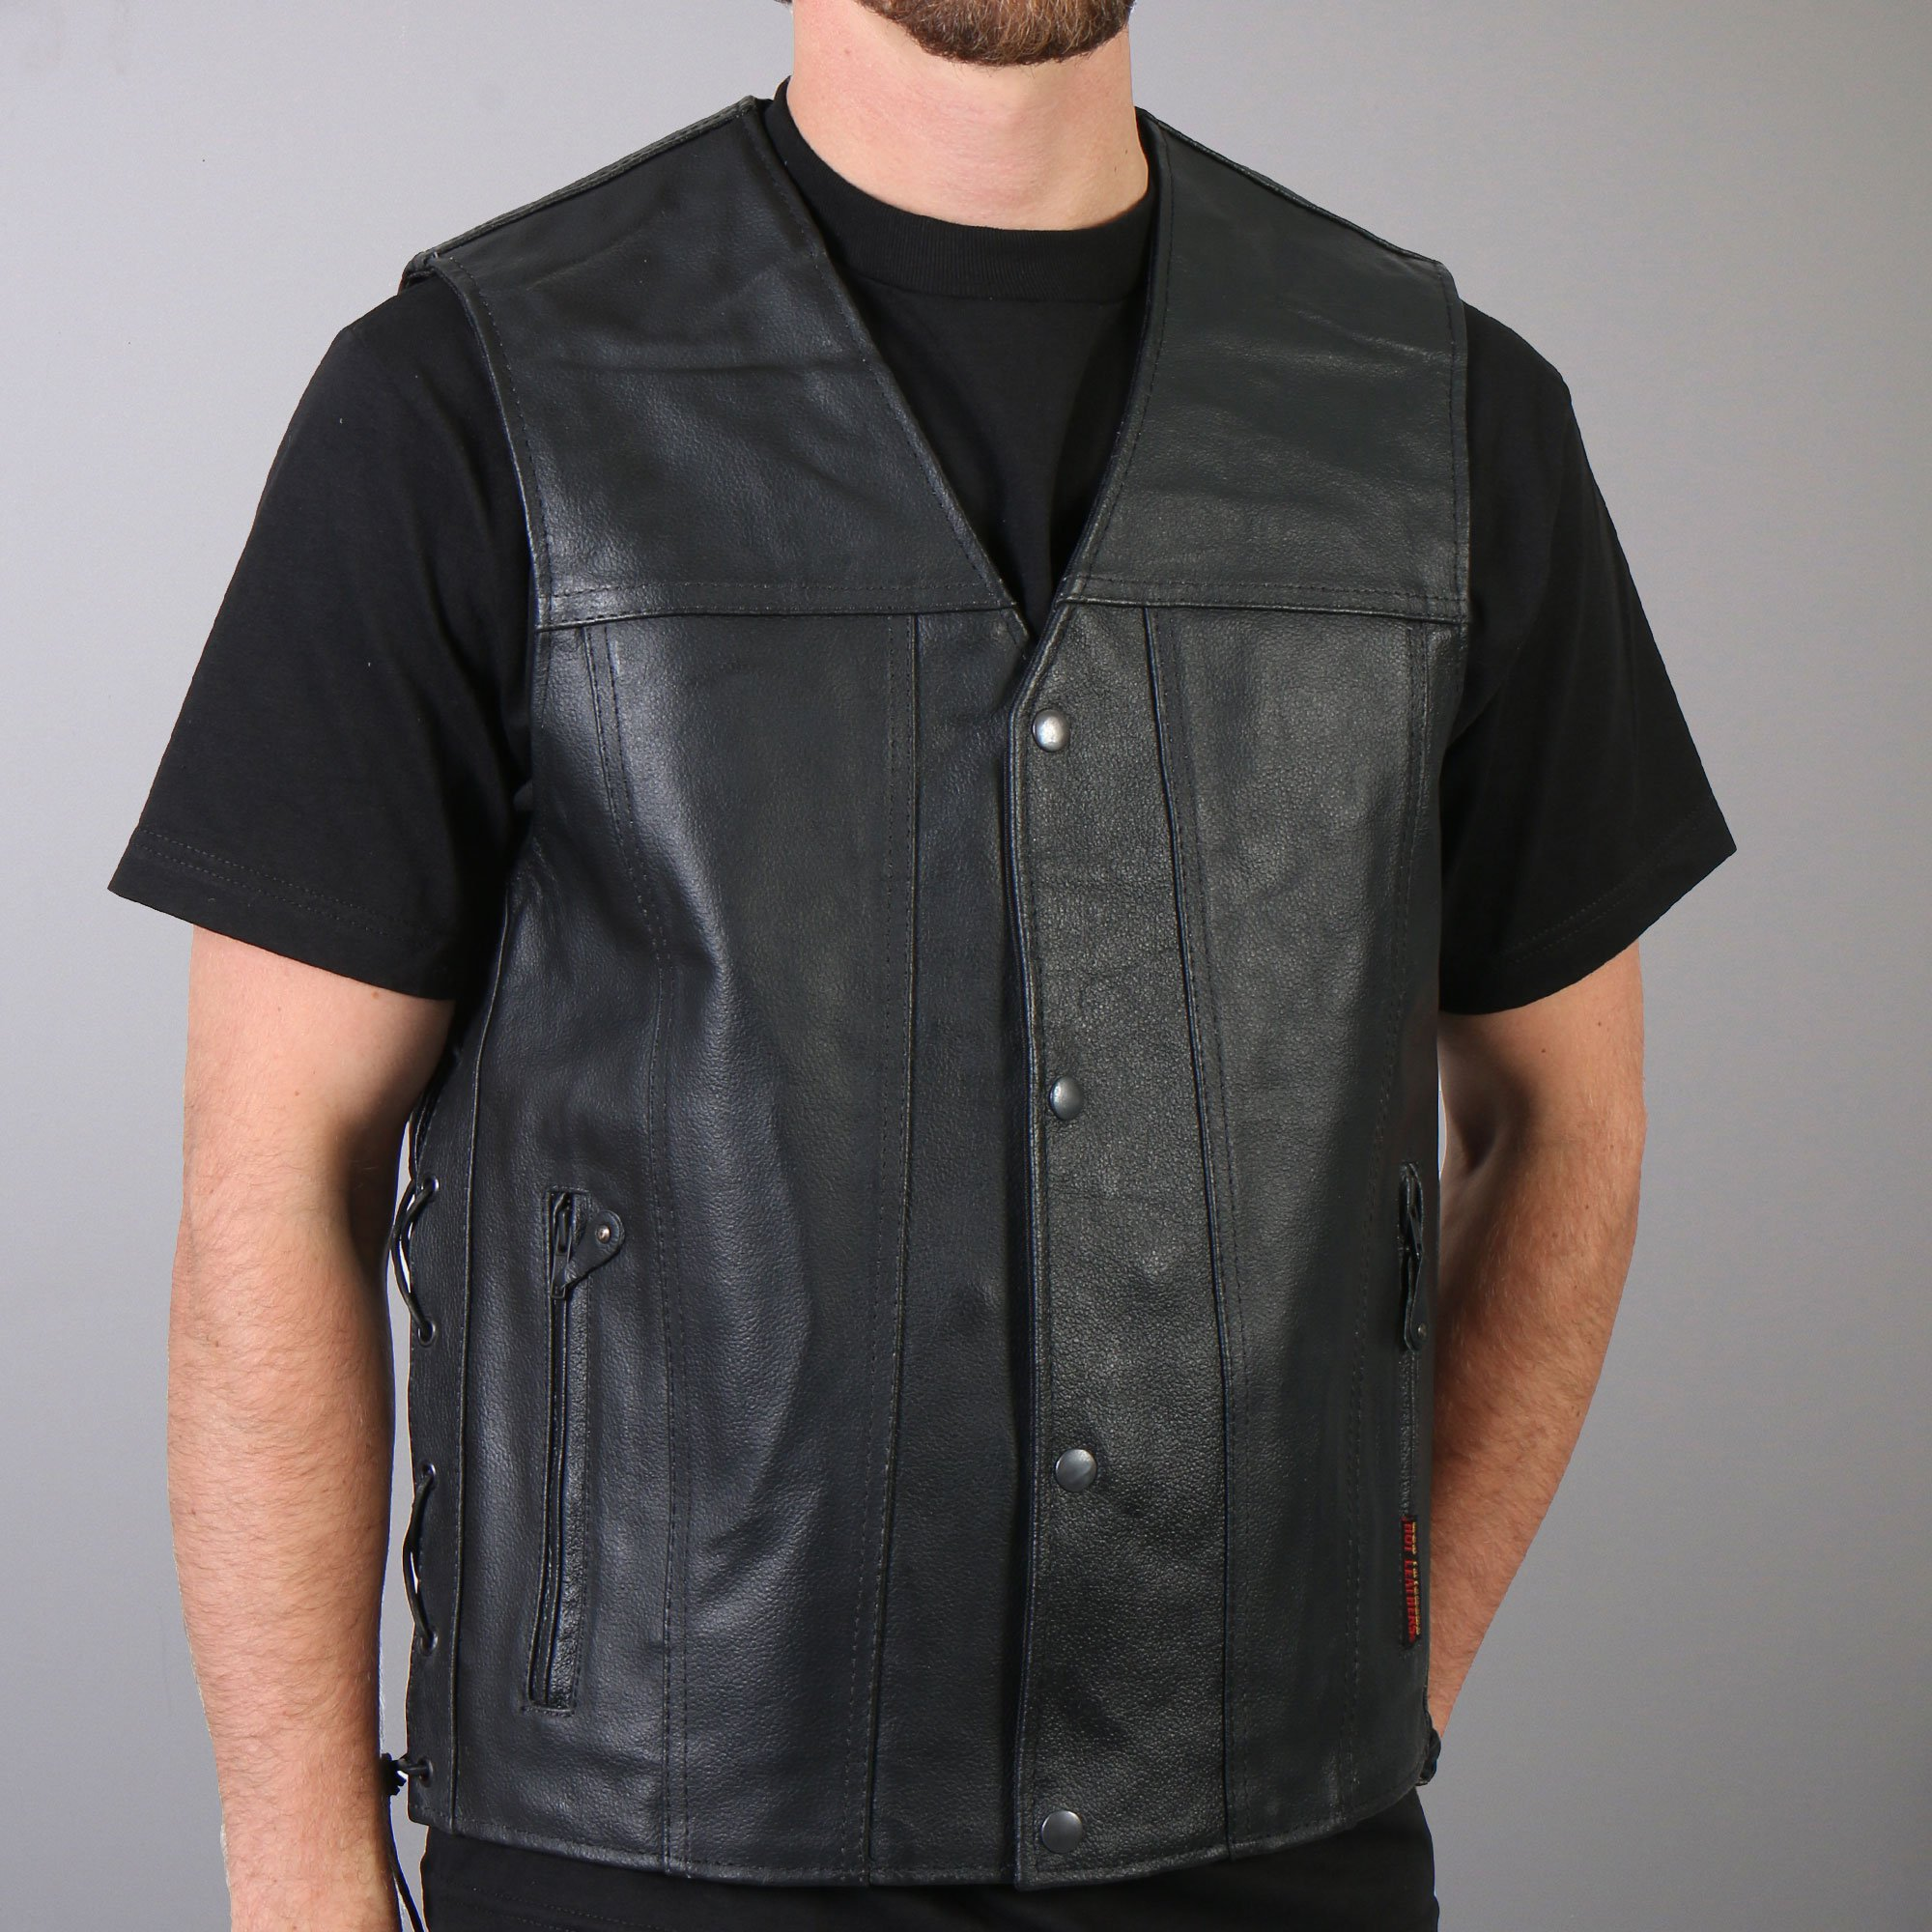 hot leathers menu0027s concealed carry leather vest w/ lace up sides aaqgvri